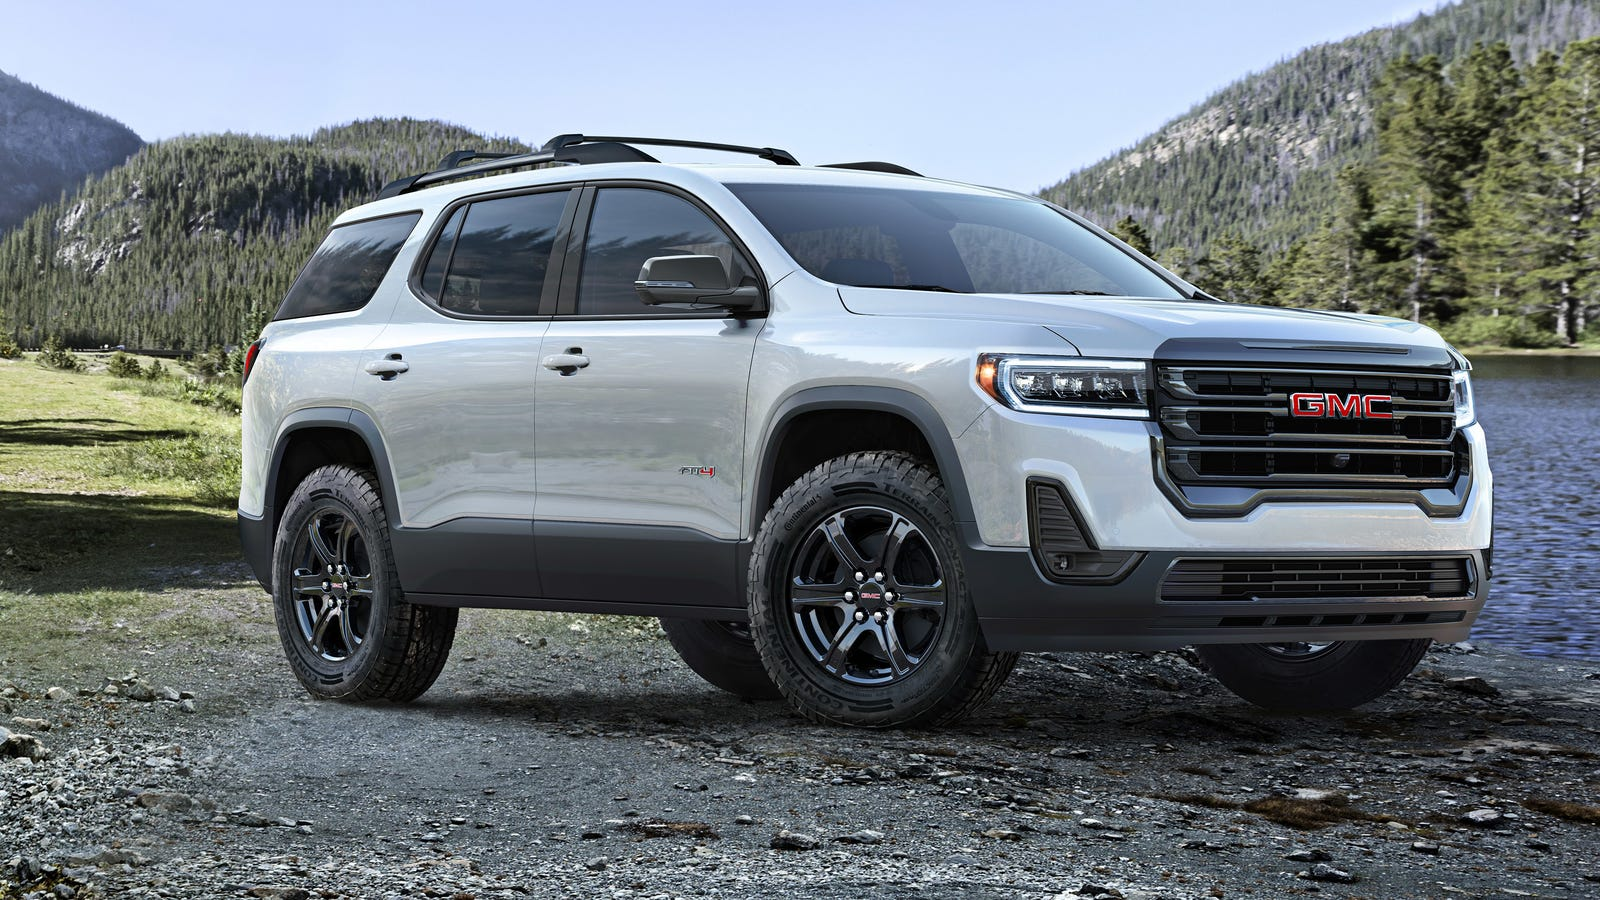 The 2020 GMC Acadia Gets an 'Off-Road' Look and a Wacky Push-Button Shifter - Jalopnik